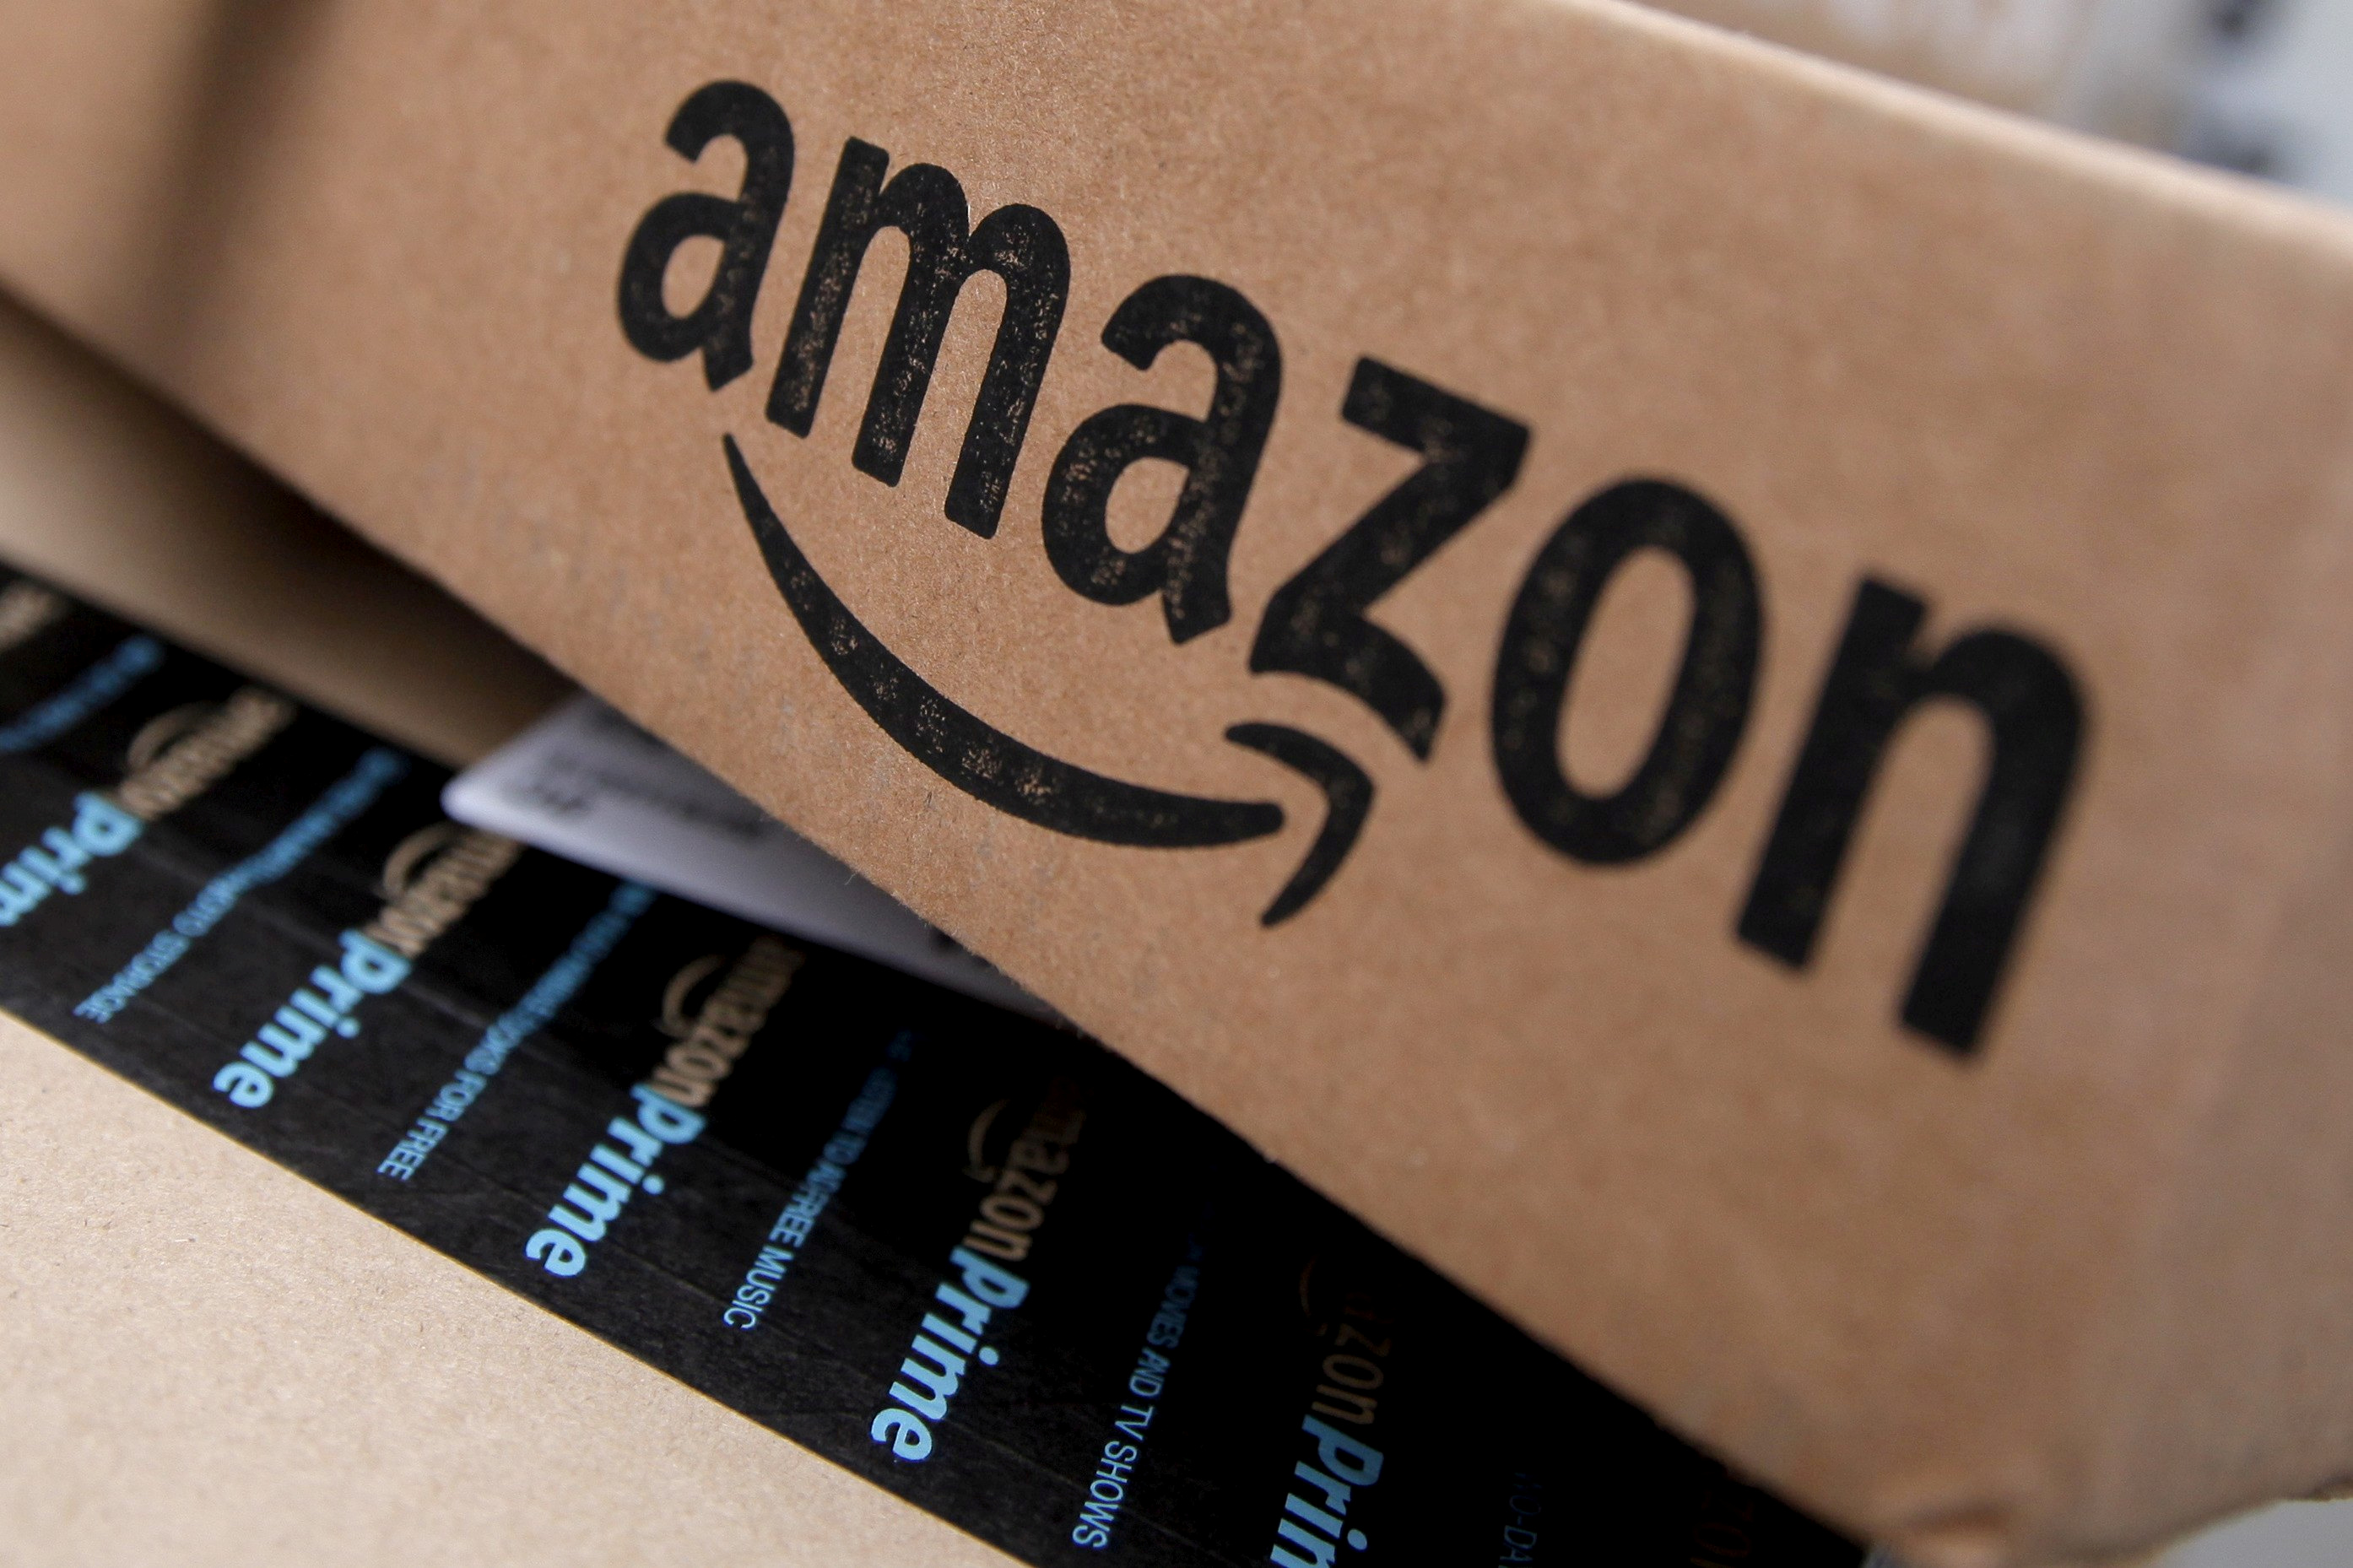 Amazon Q3 earnings preview: Wall Street braces for online shopping slowdown after pandemic surge